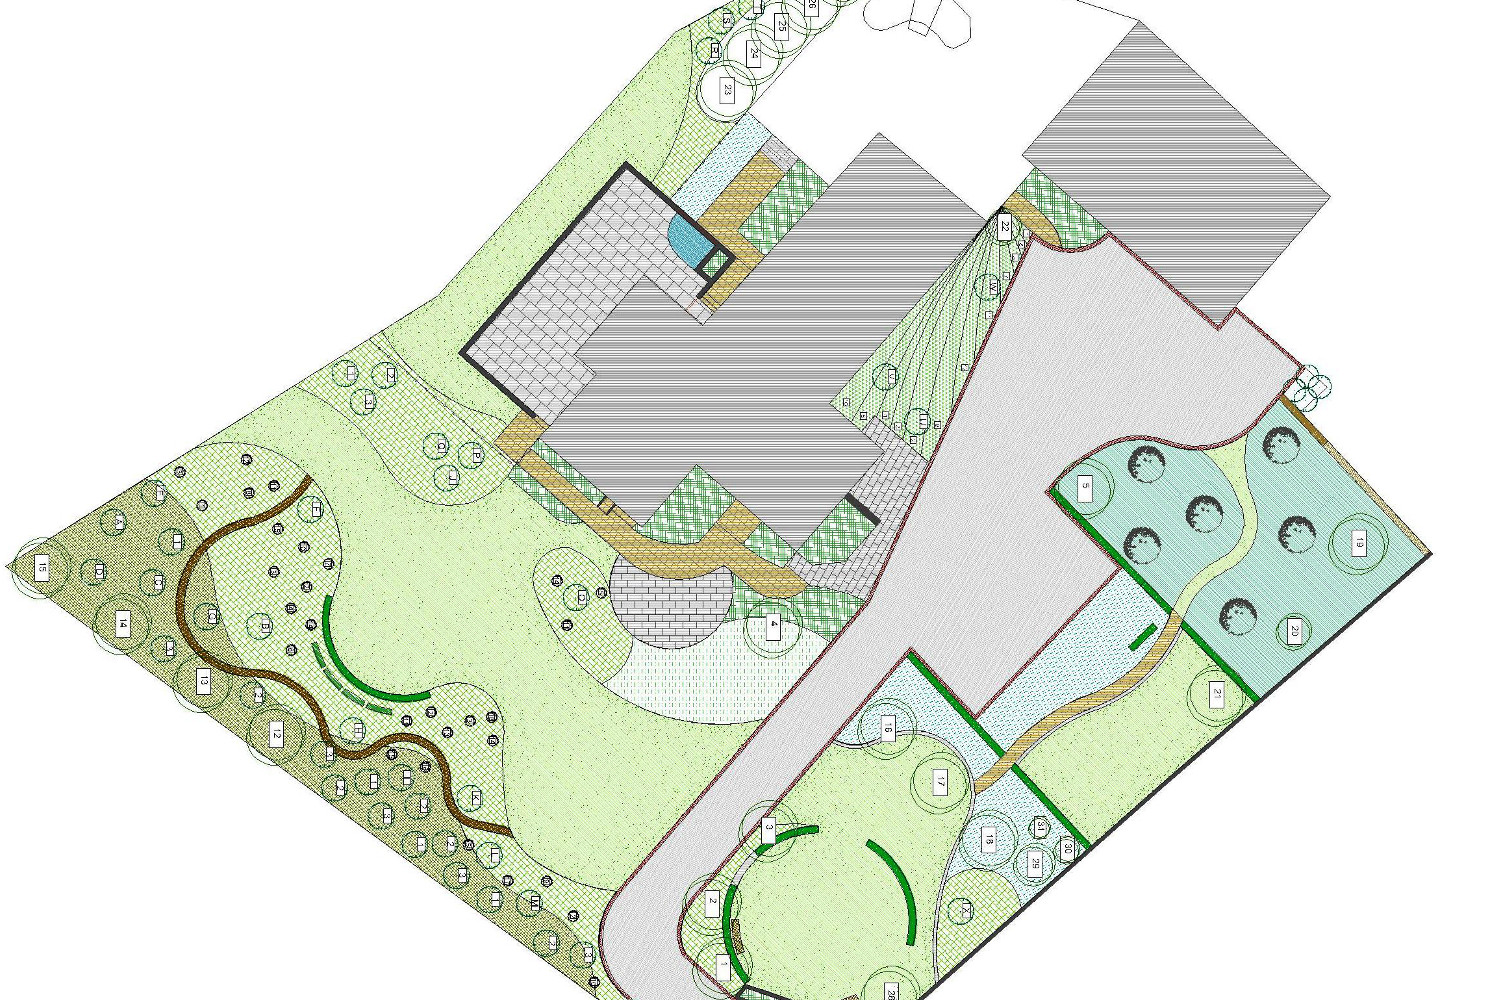 Tim-Austen-Garden-Design-Rural Garden Cahir Tipperary-4